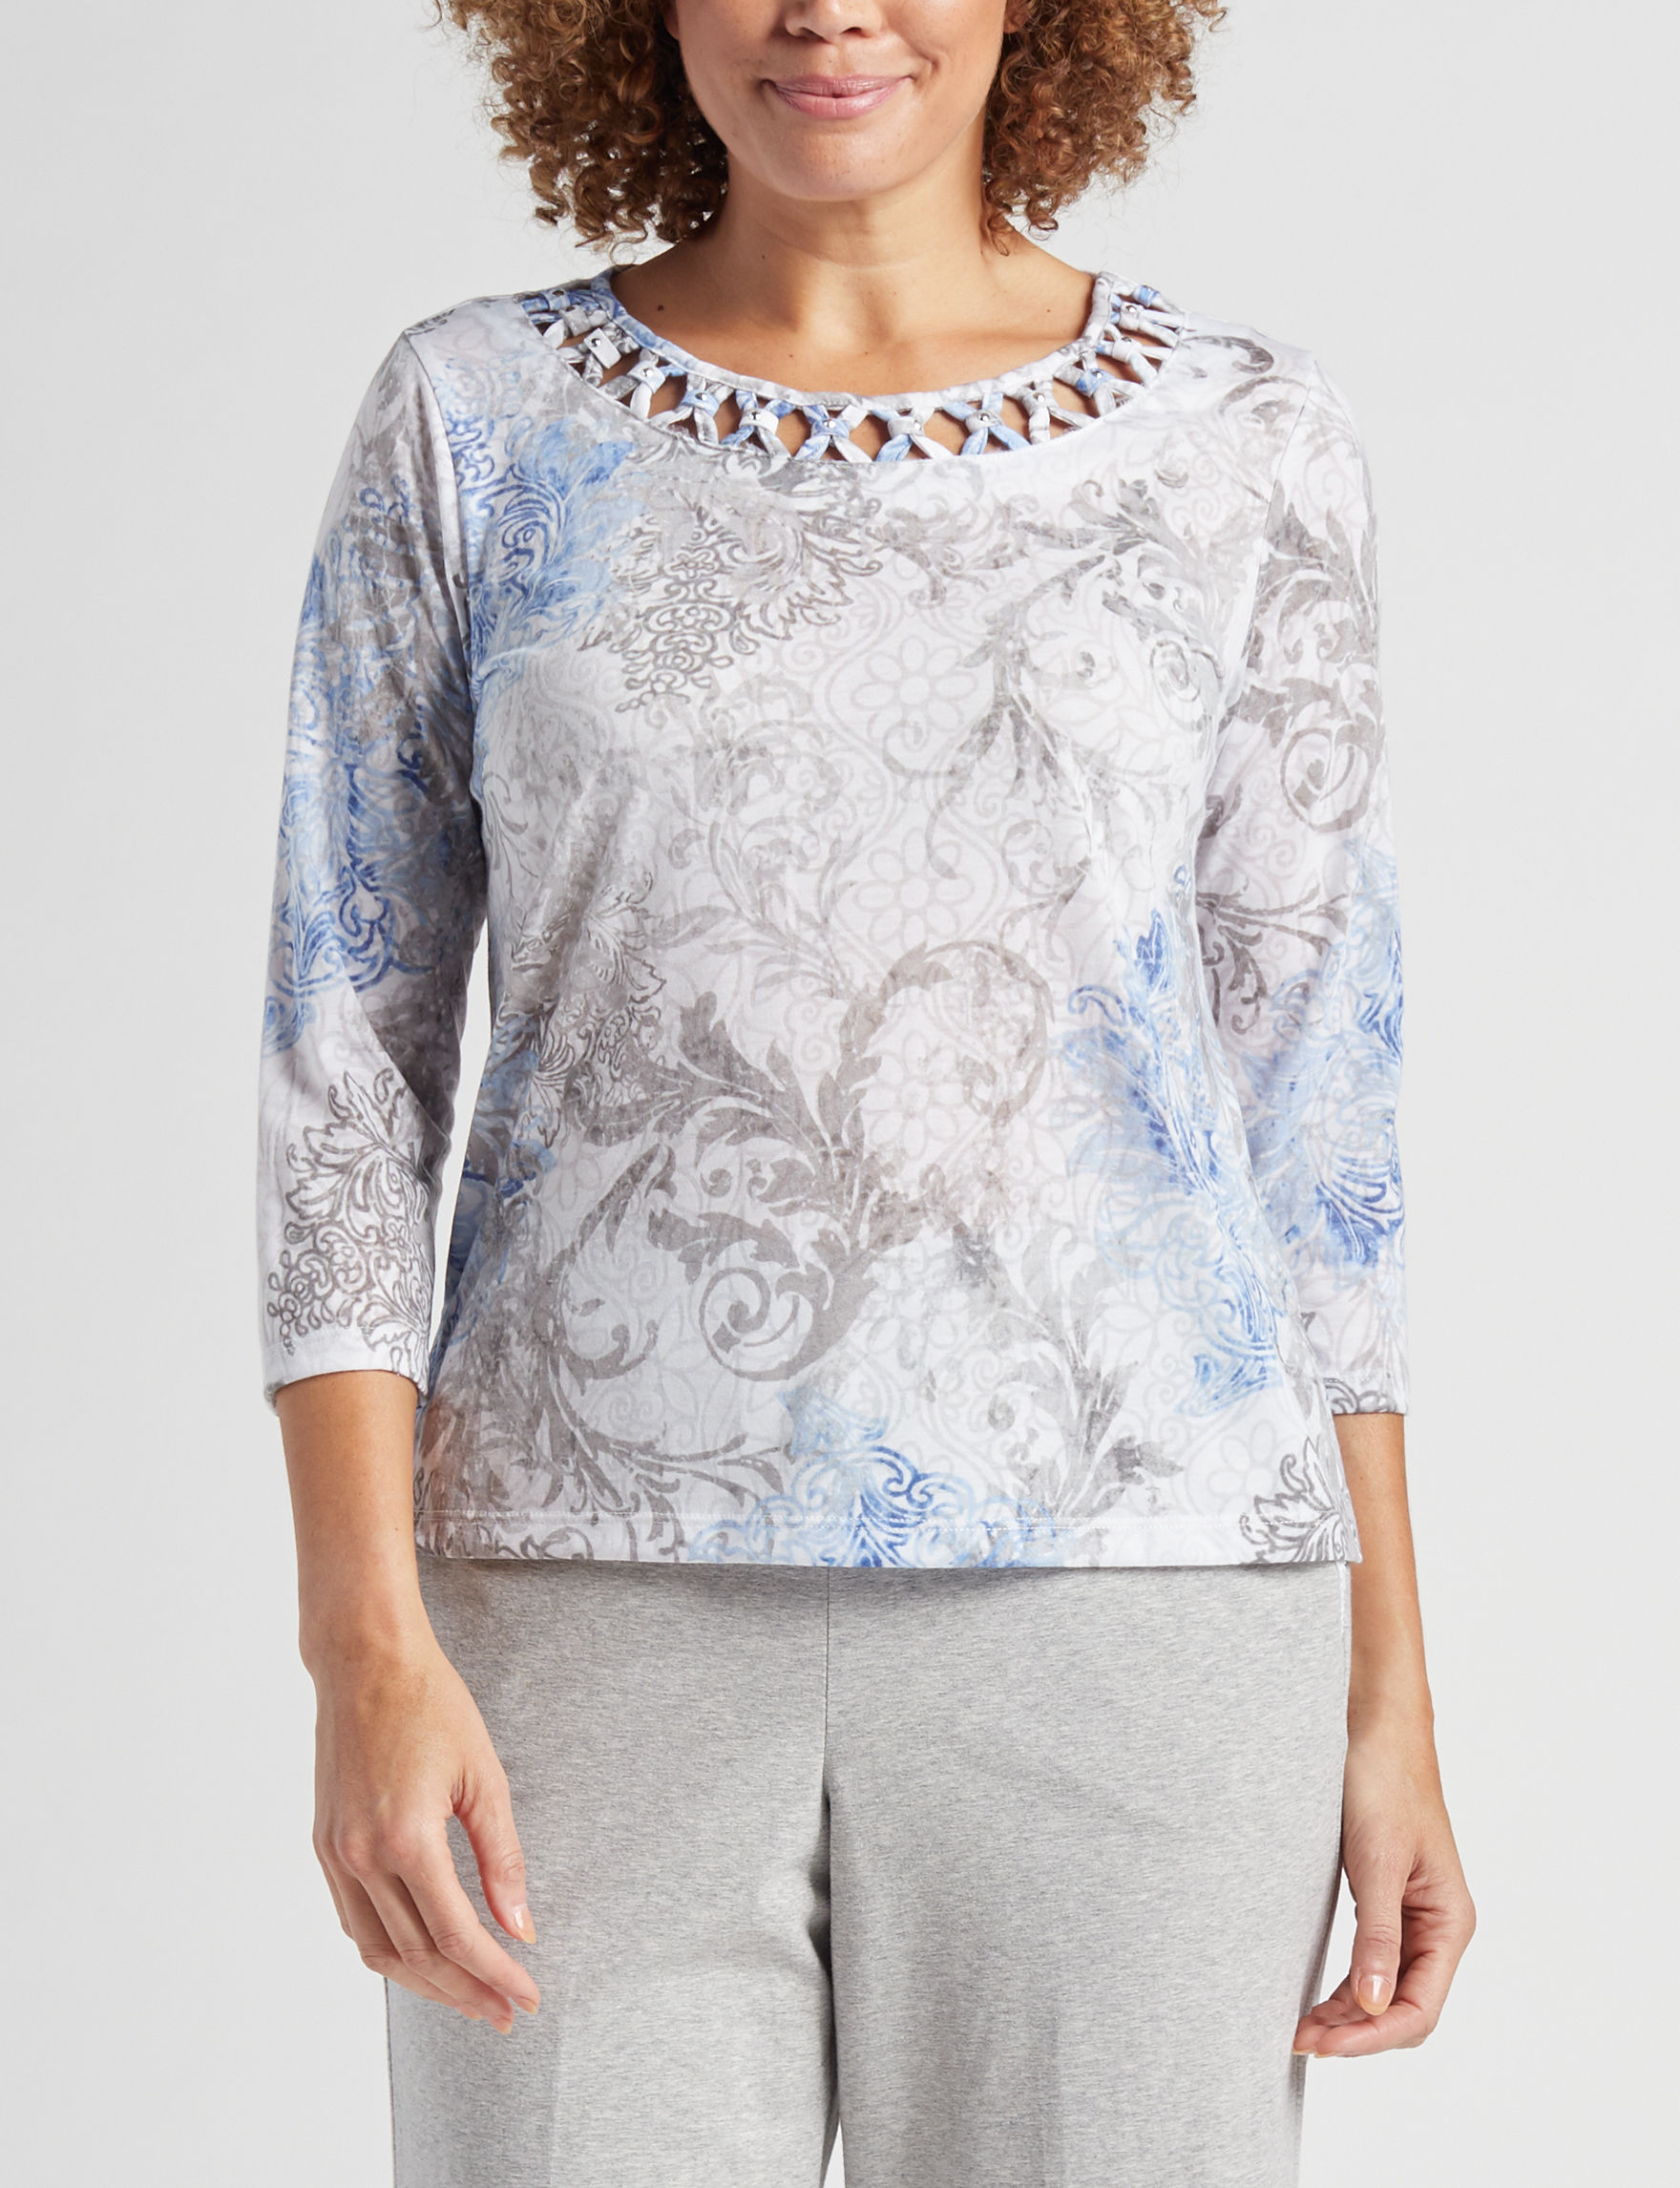 Alfred Dunner Grey / Multi Shirts & Blouses